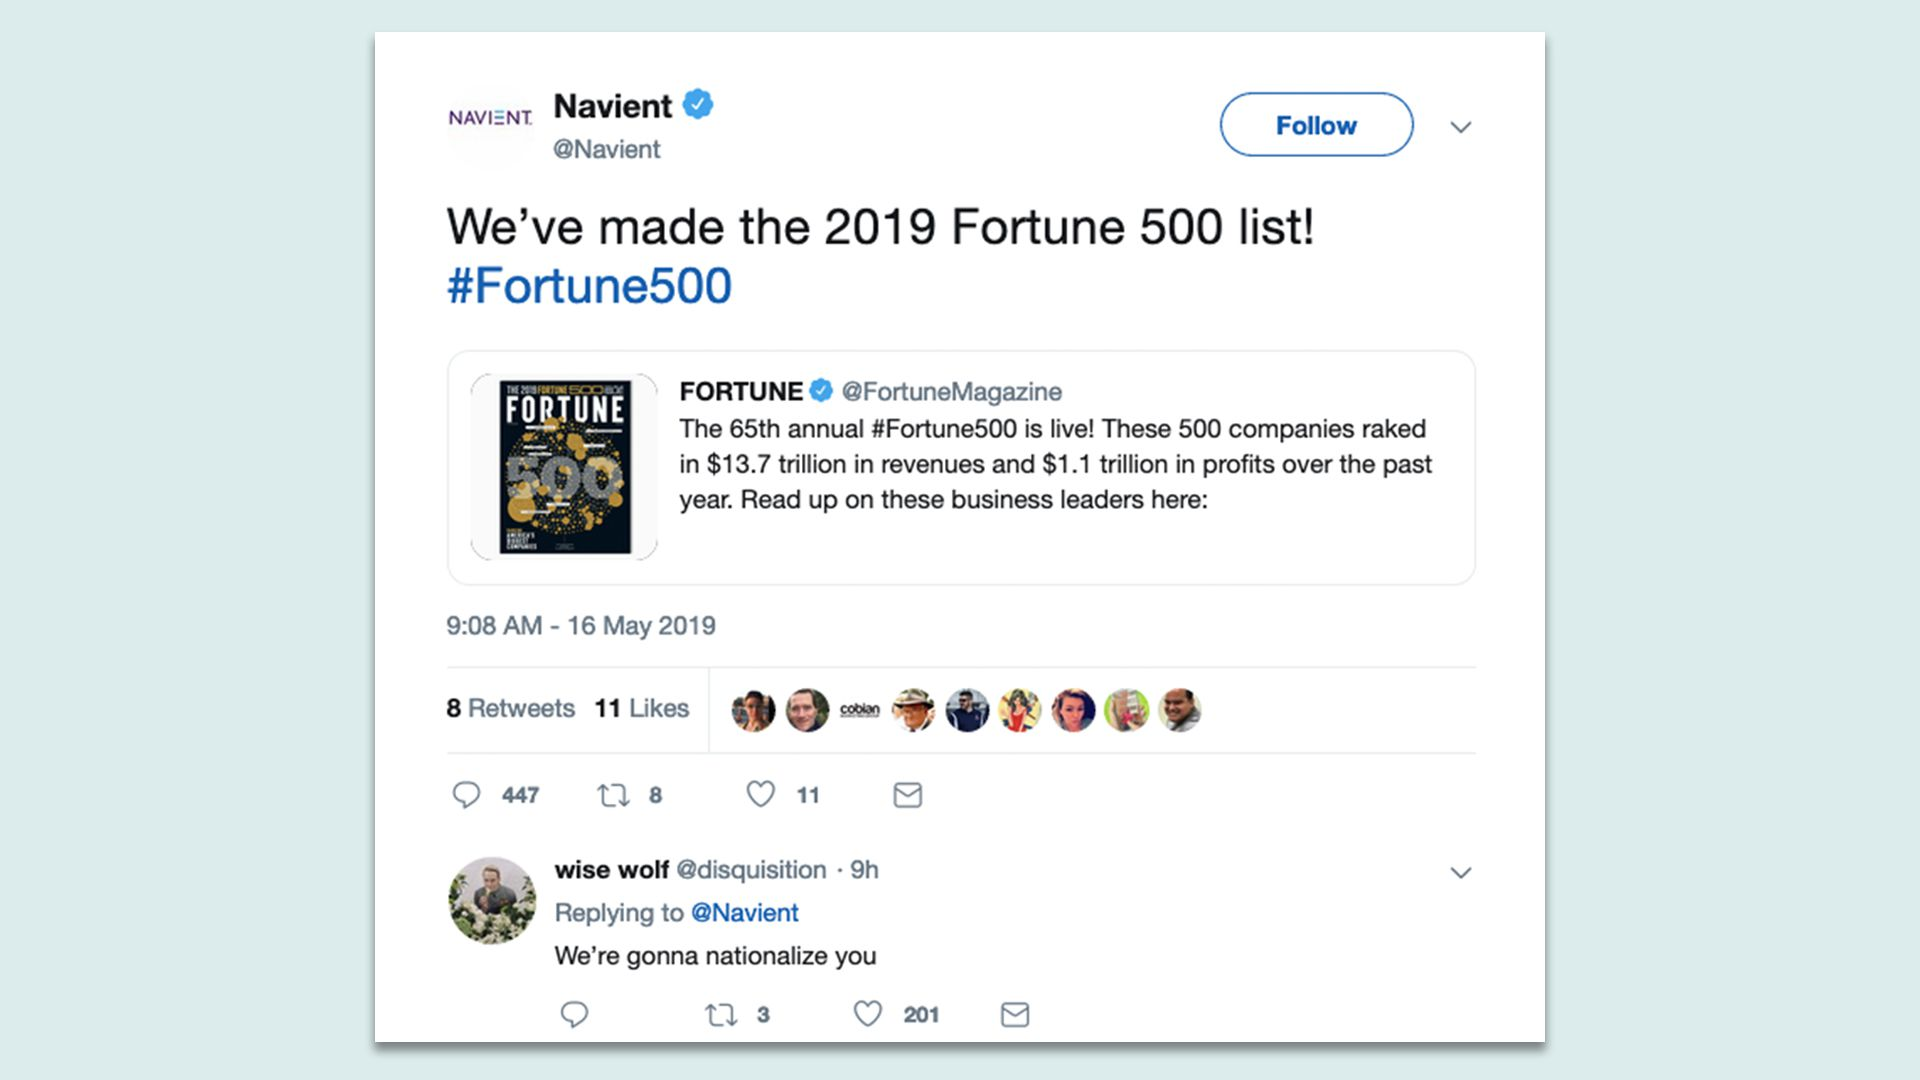 A tweet from Navient's twitter account about its inclusion in the Fortune 500 and a snarky response from a commenter.